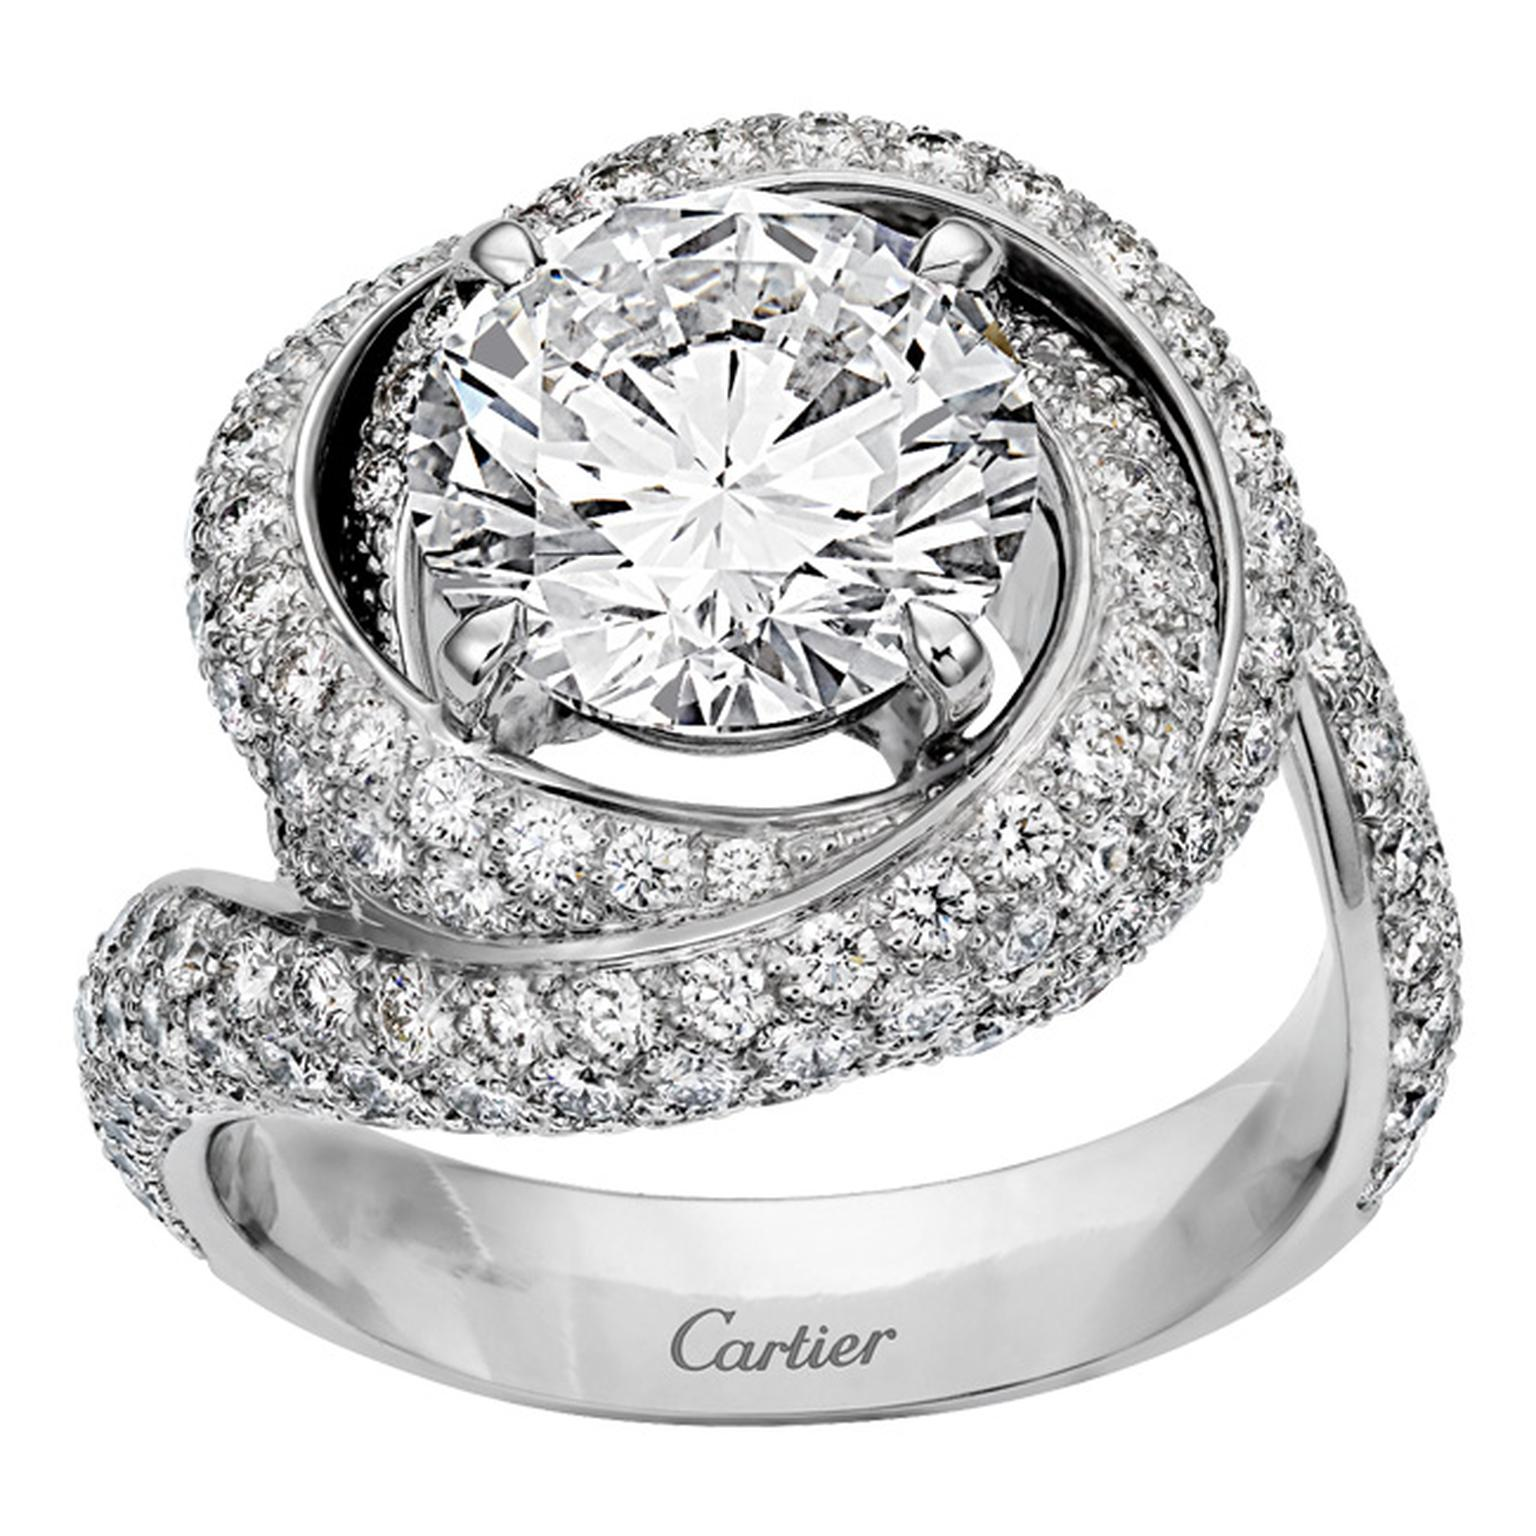 Cartier Trinity Ruban Solitaire platinum and diamond ring_20131122_Main